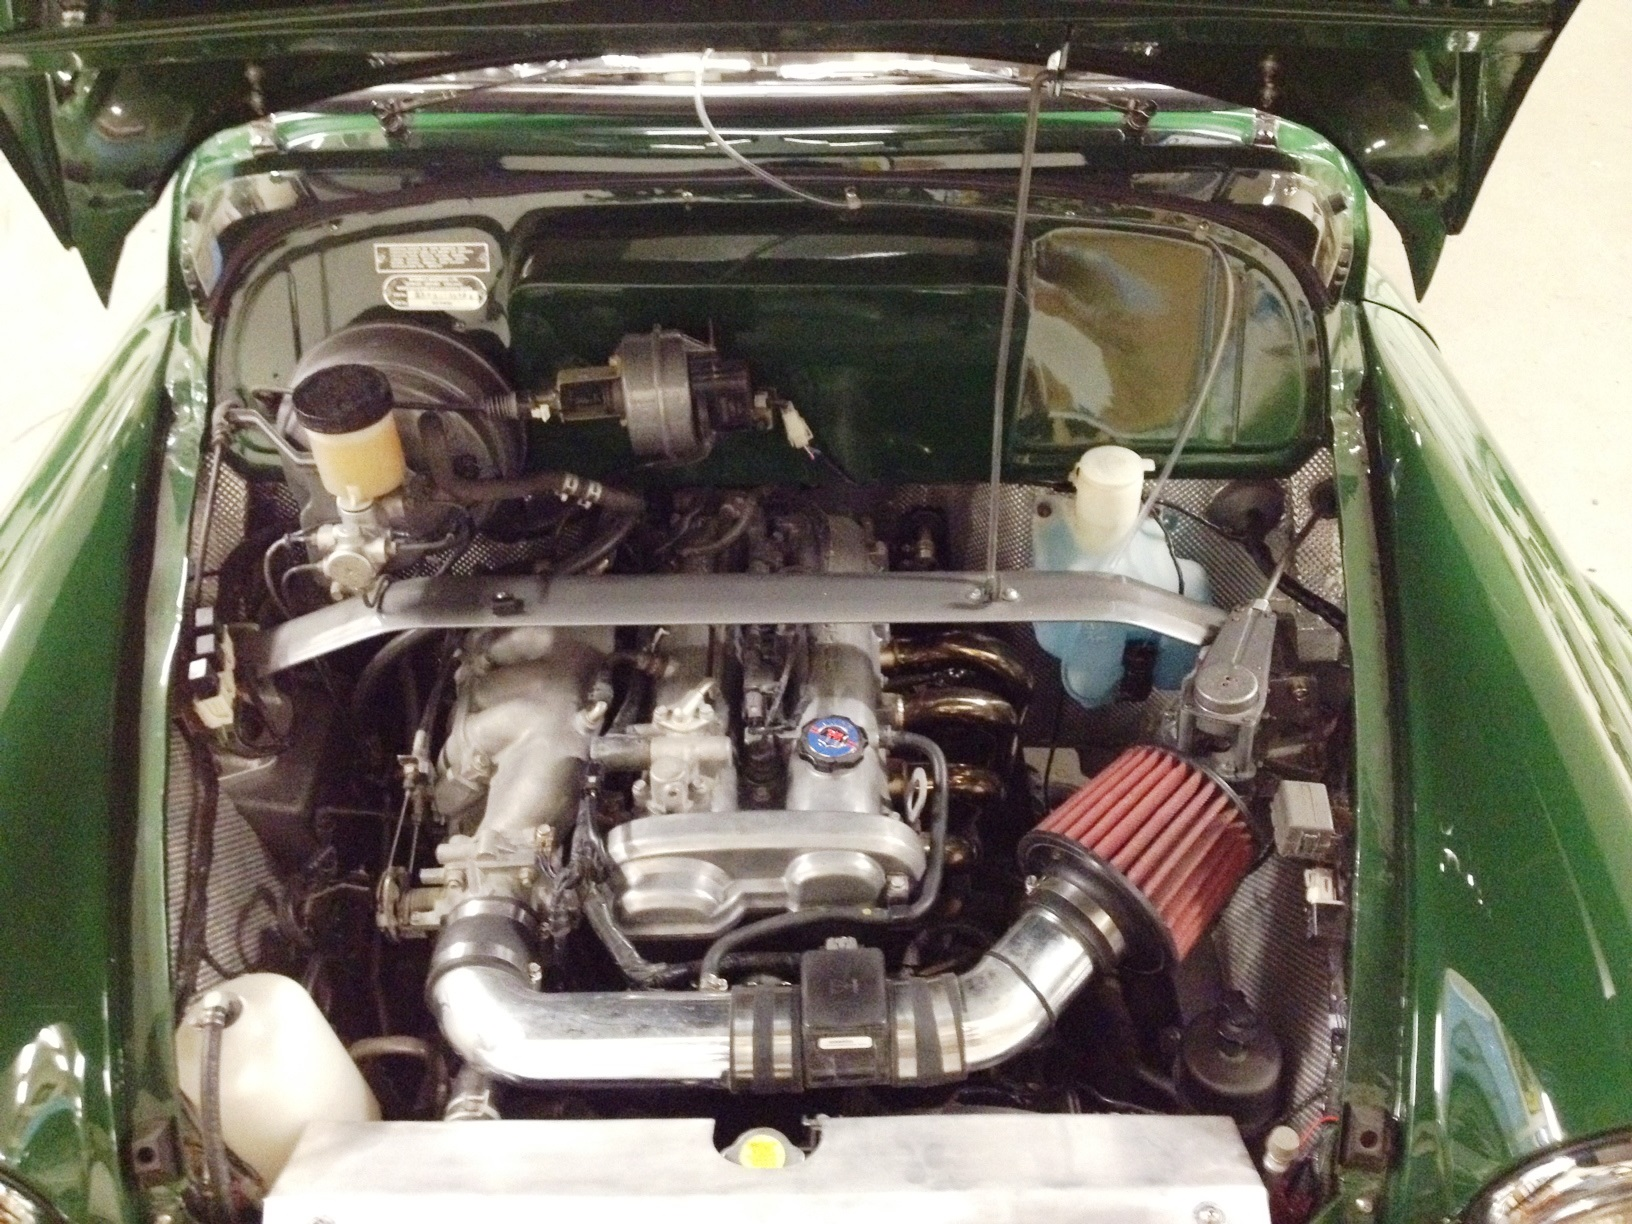 rebuild-185 engine bay.JPG